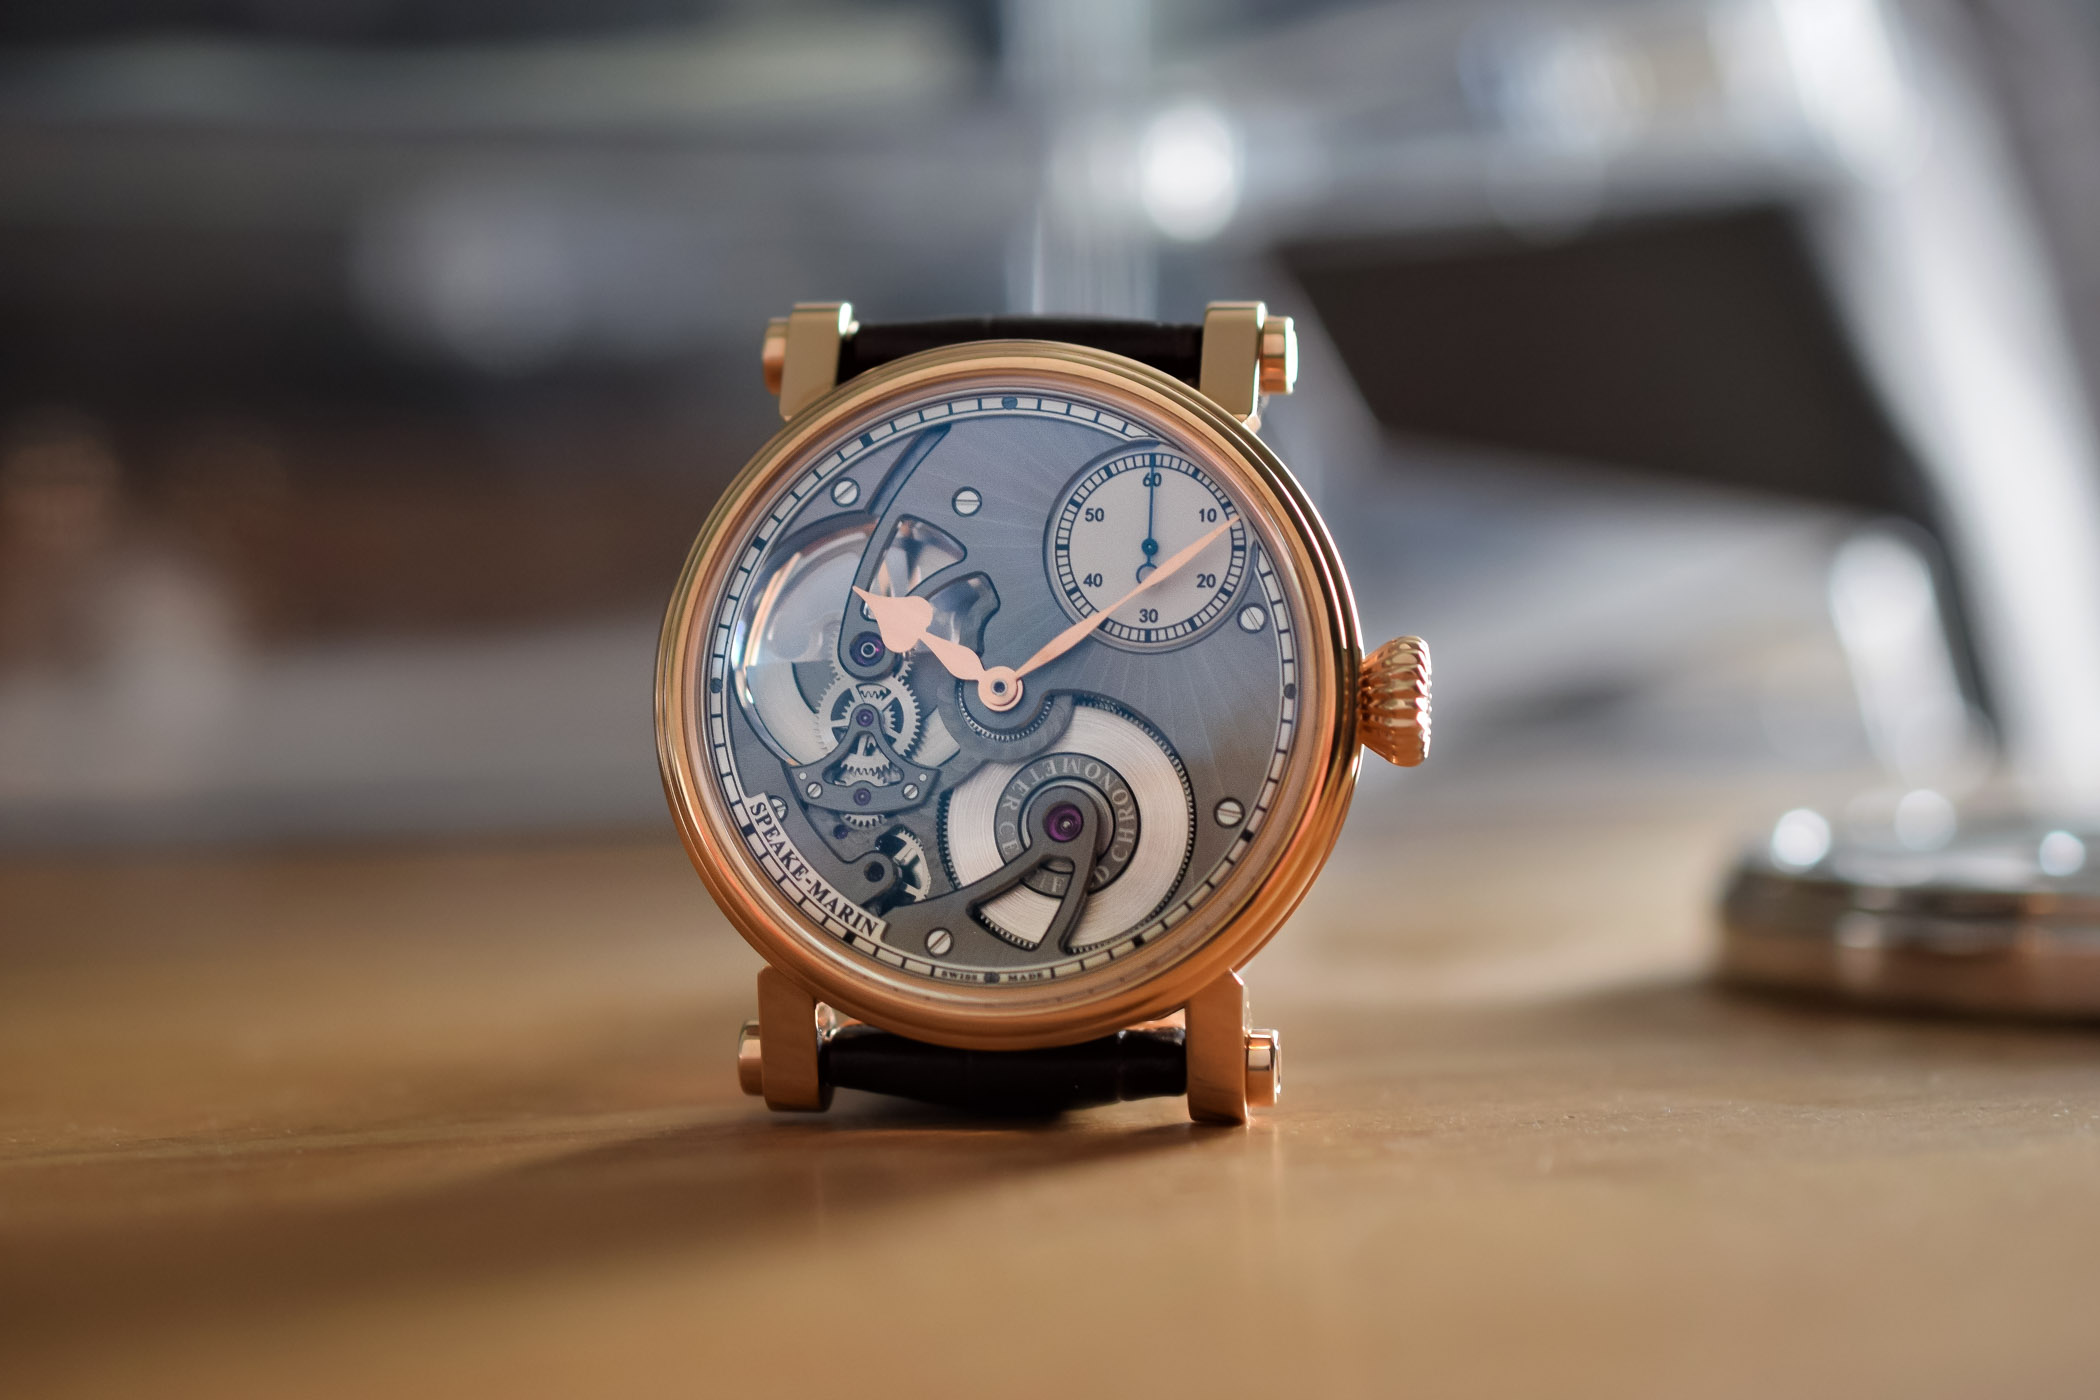 Speake-Marin One & Two Openworked